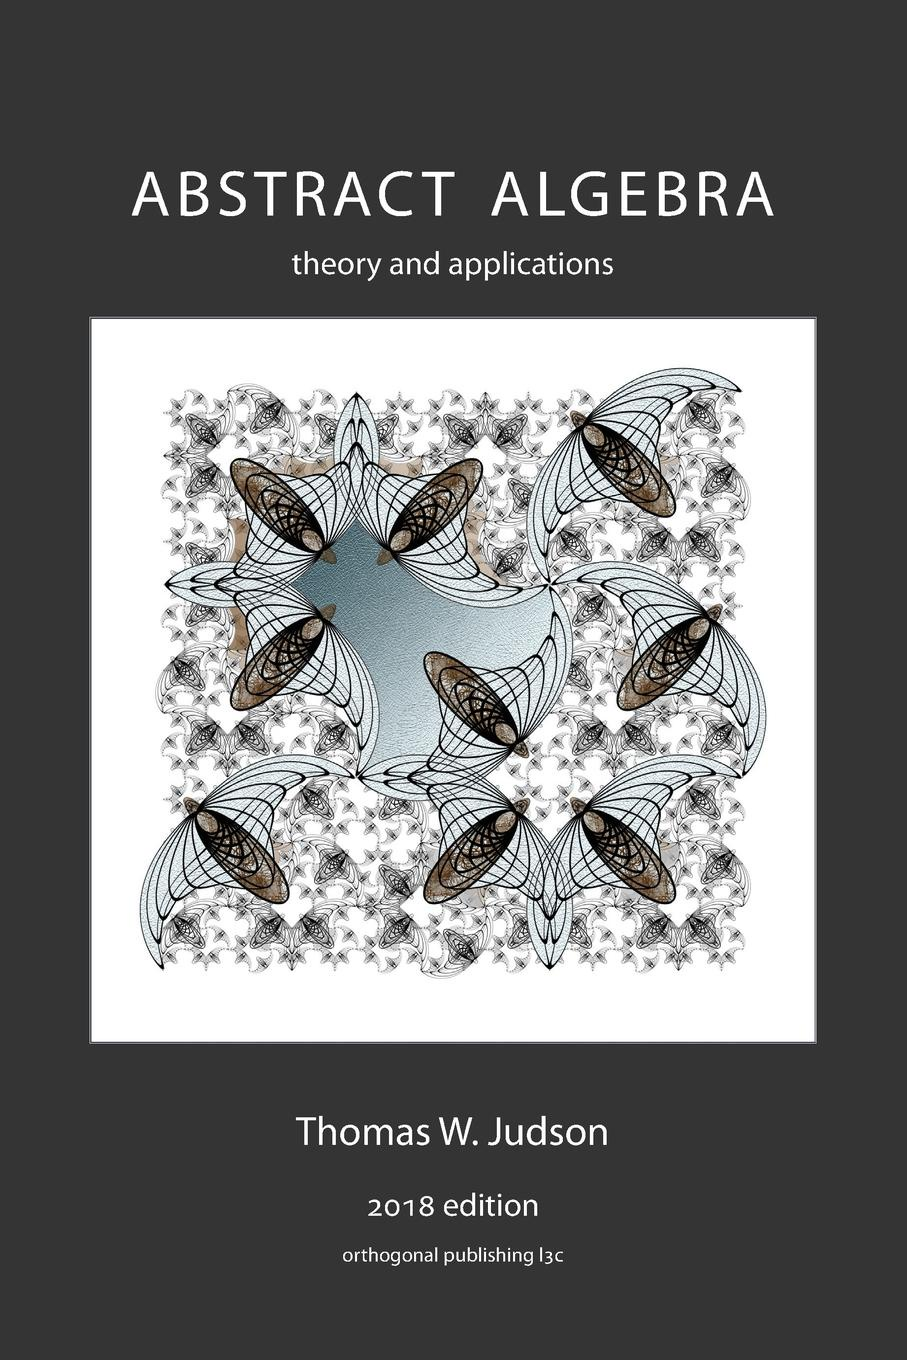 Thomas W Judson Abstract Algebra. Theory and Applications solvent free coating from theory to applications